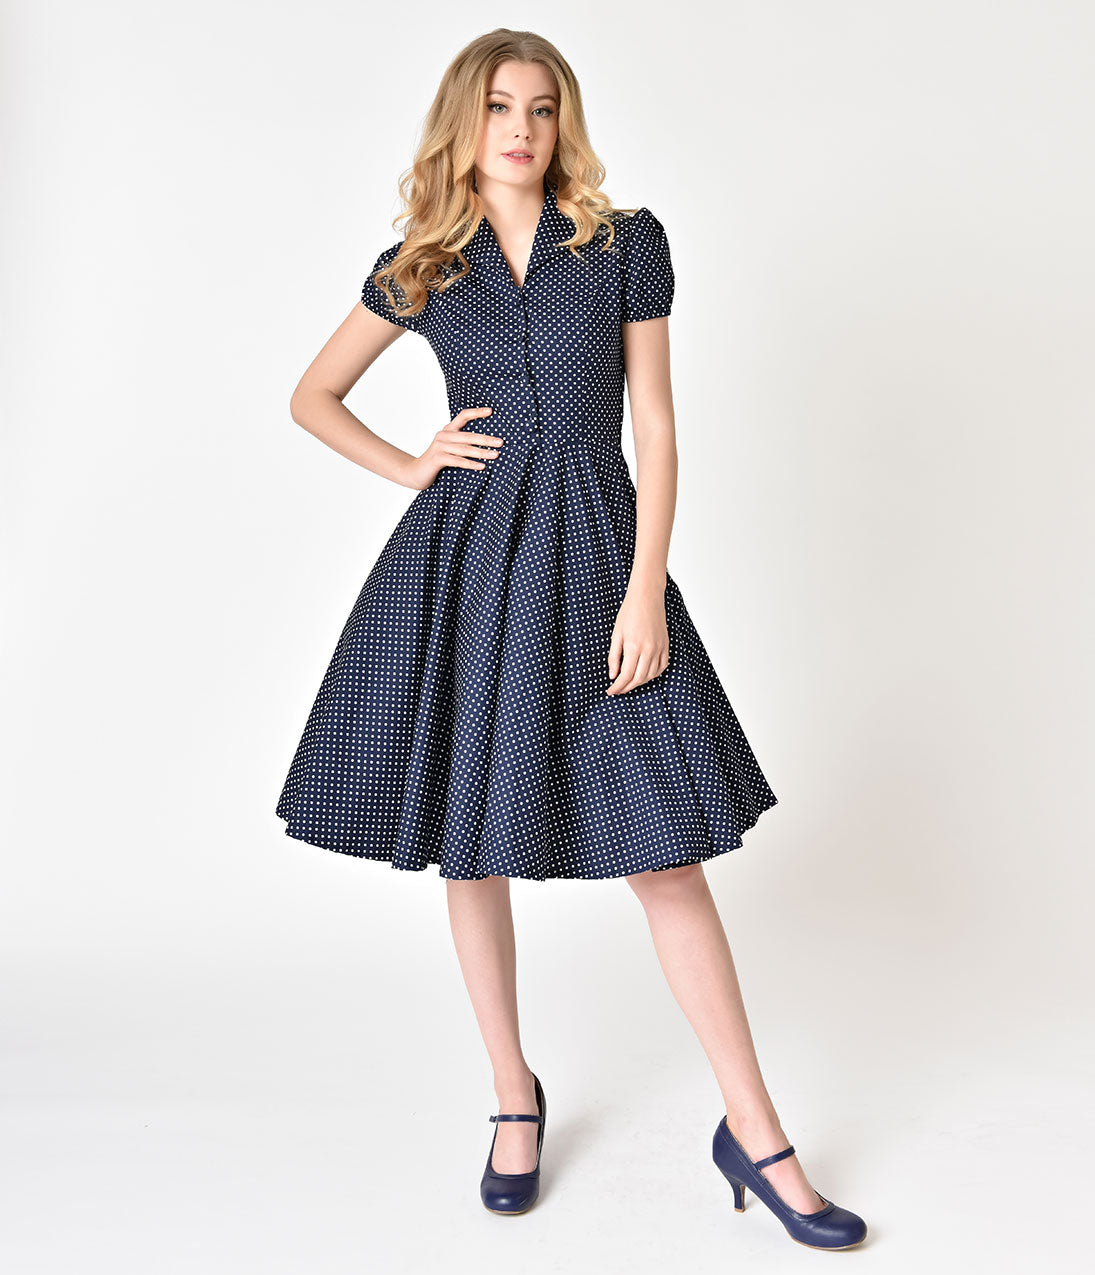 Pin Up Dresses | Pin Up Clothing 1950s Style Navy  White Polka Dot Short Sleeve Mona Swing Dress $68.00 AT vintagedancer.com